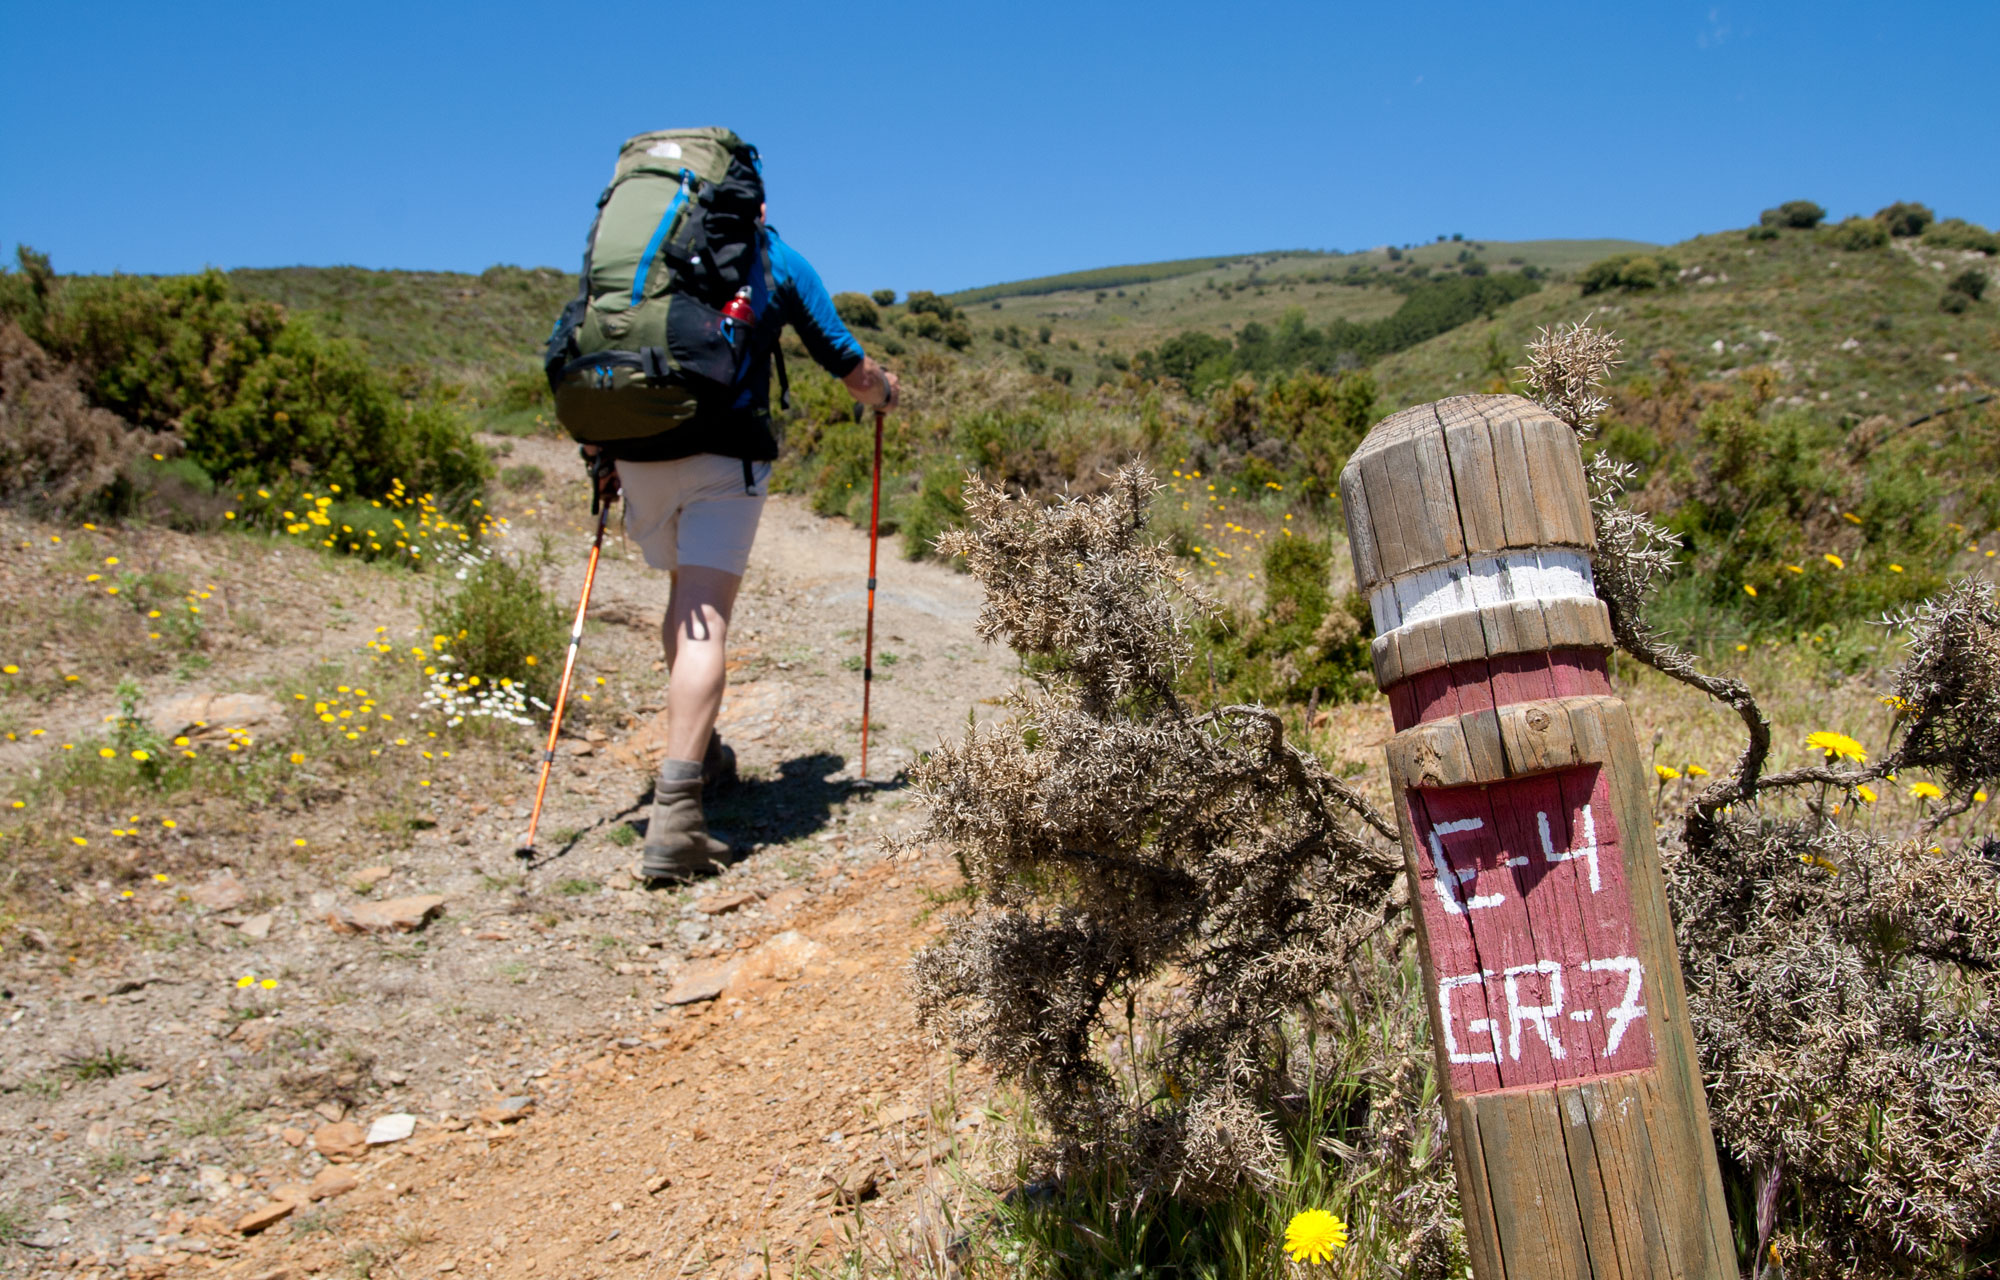 GR wandelroutes in Andalusië